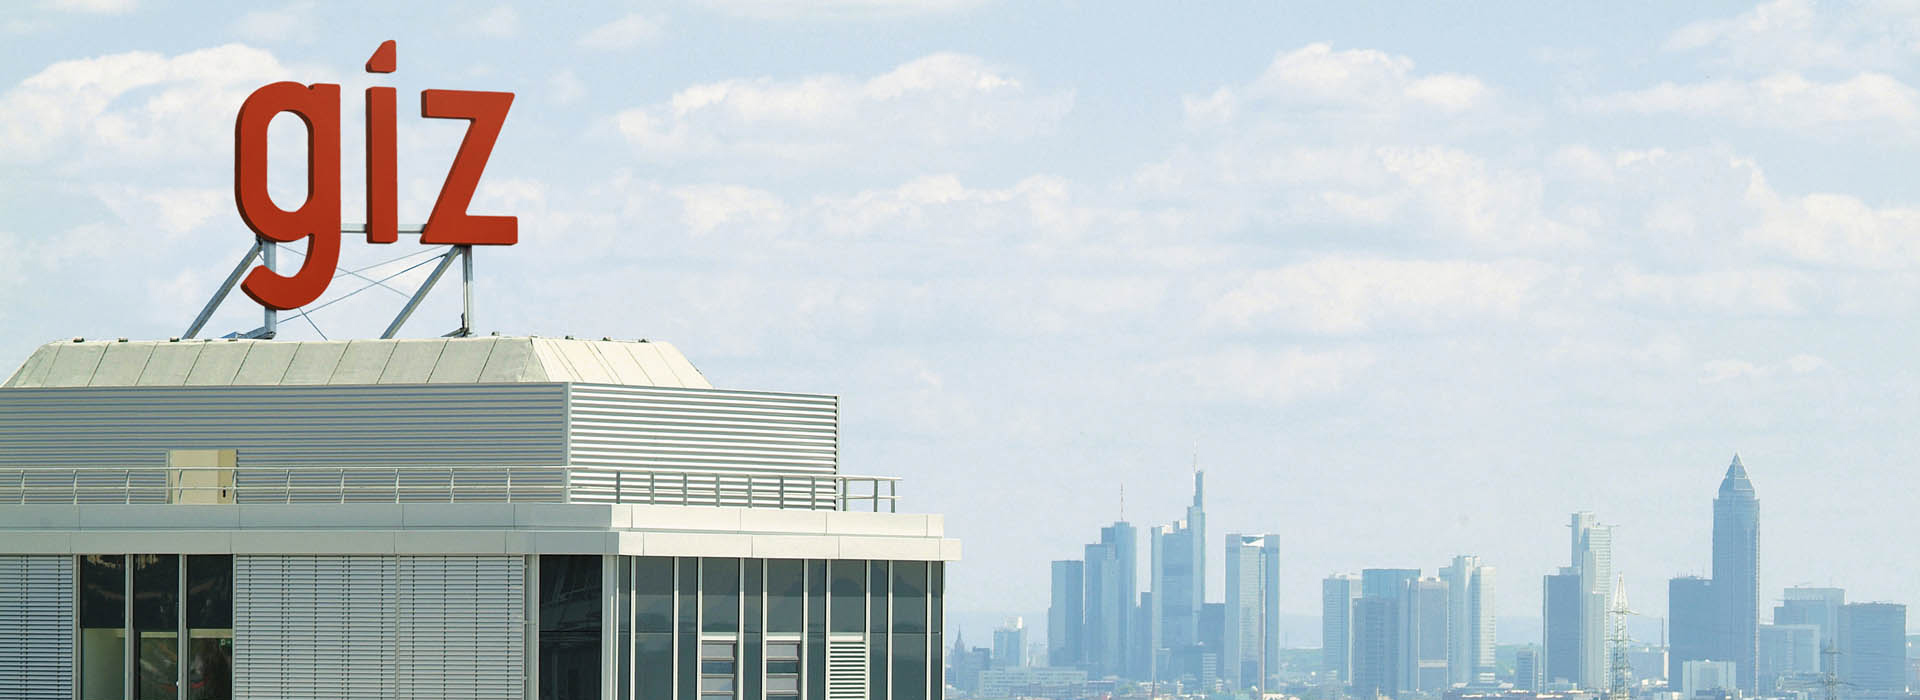 Frankfurt skyline as seen from Eschborn with GIZ building in foreground